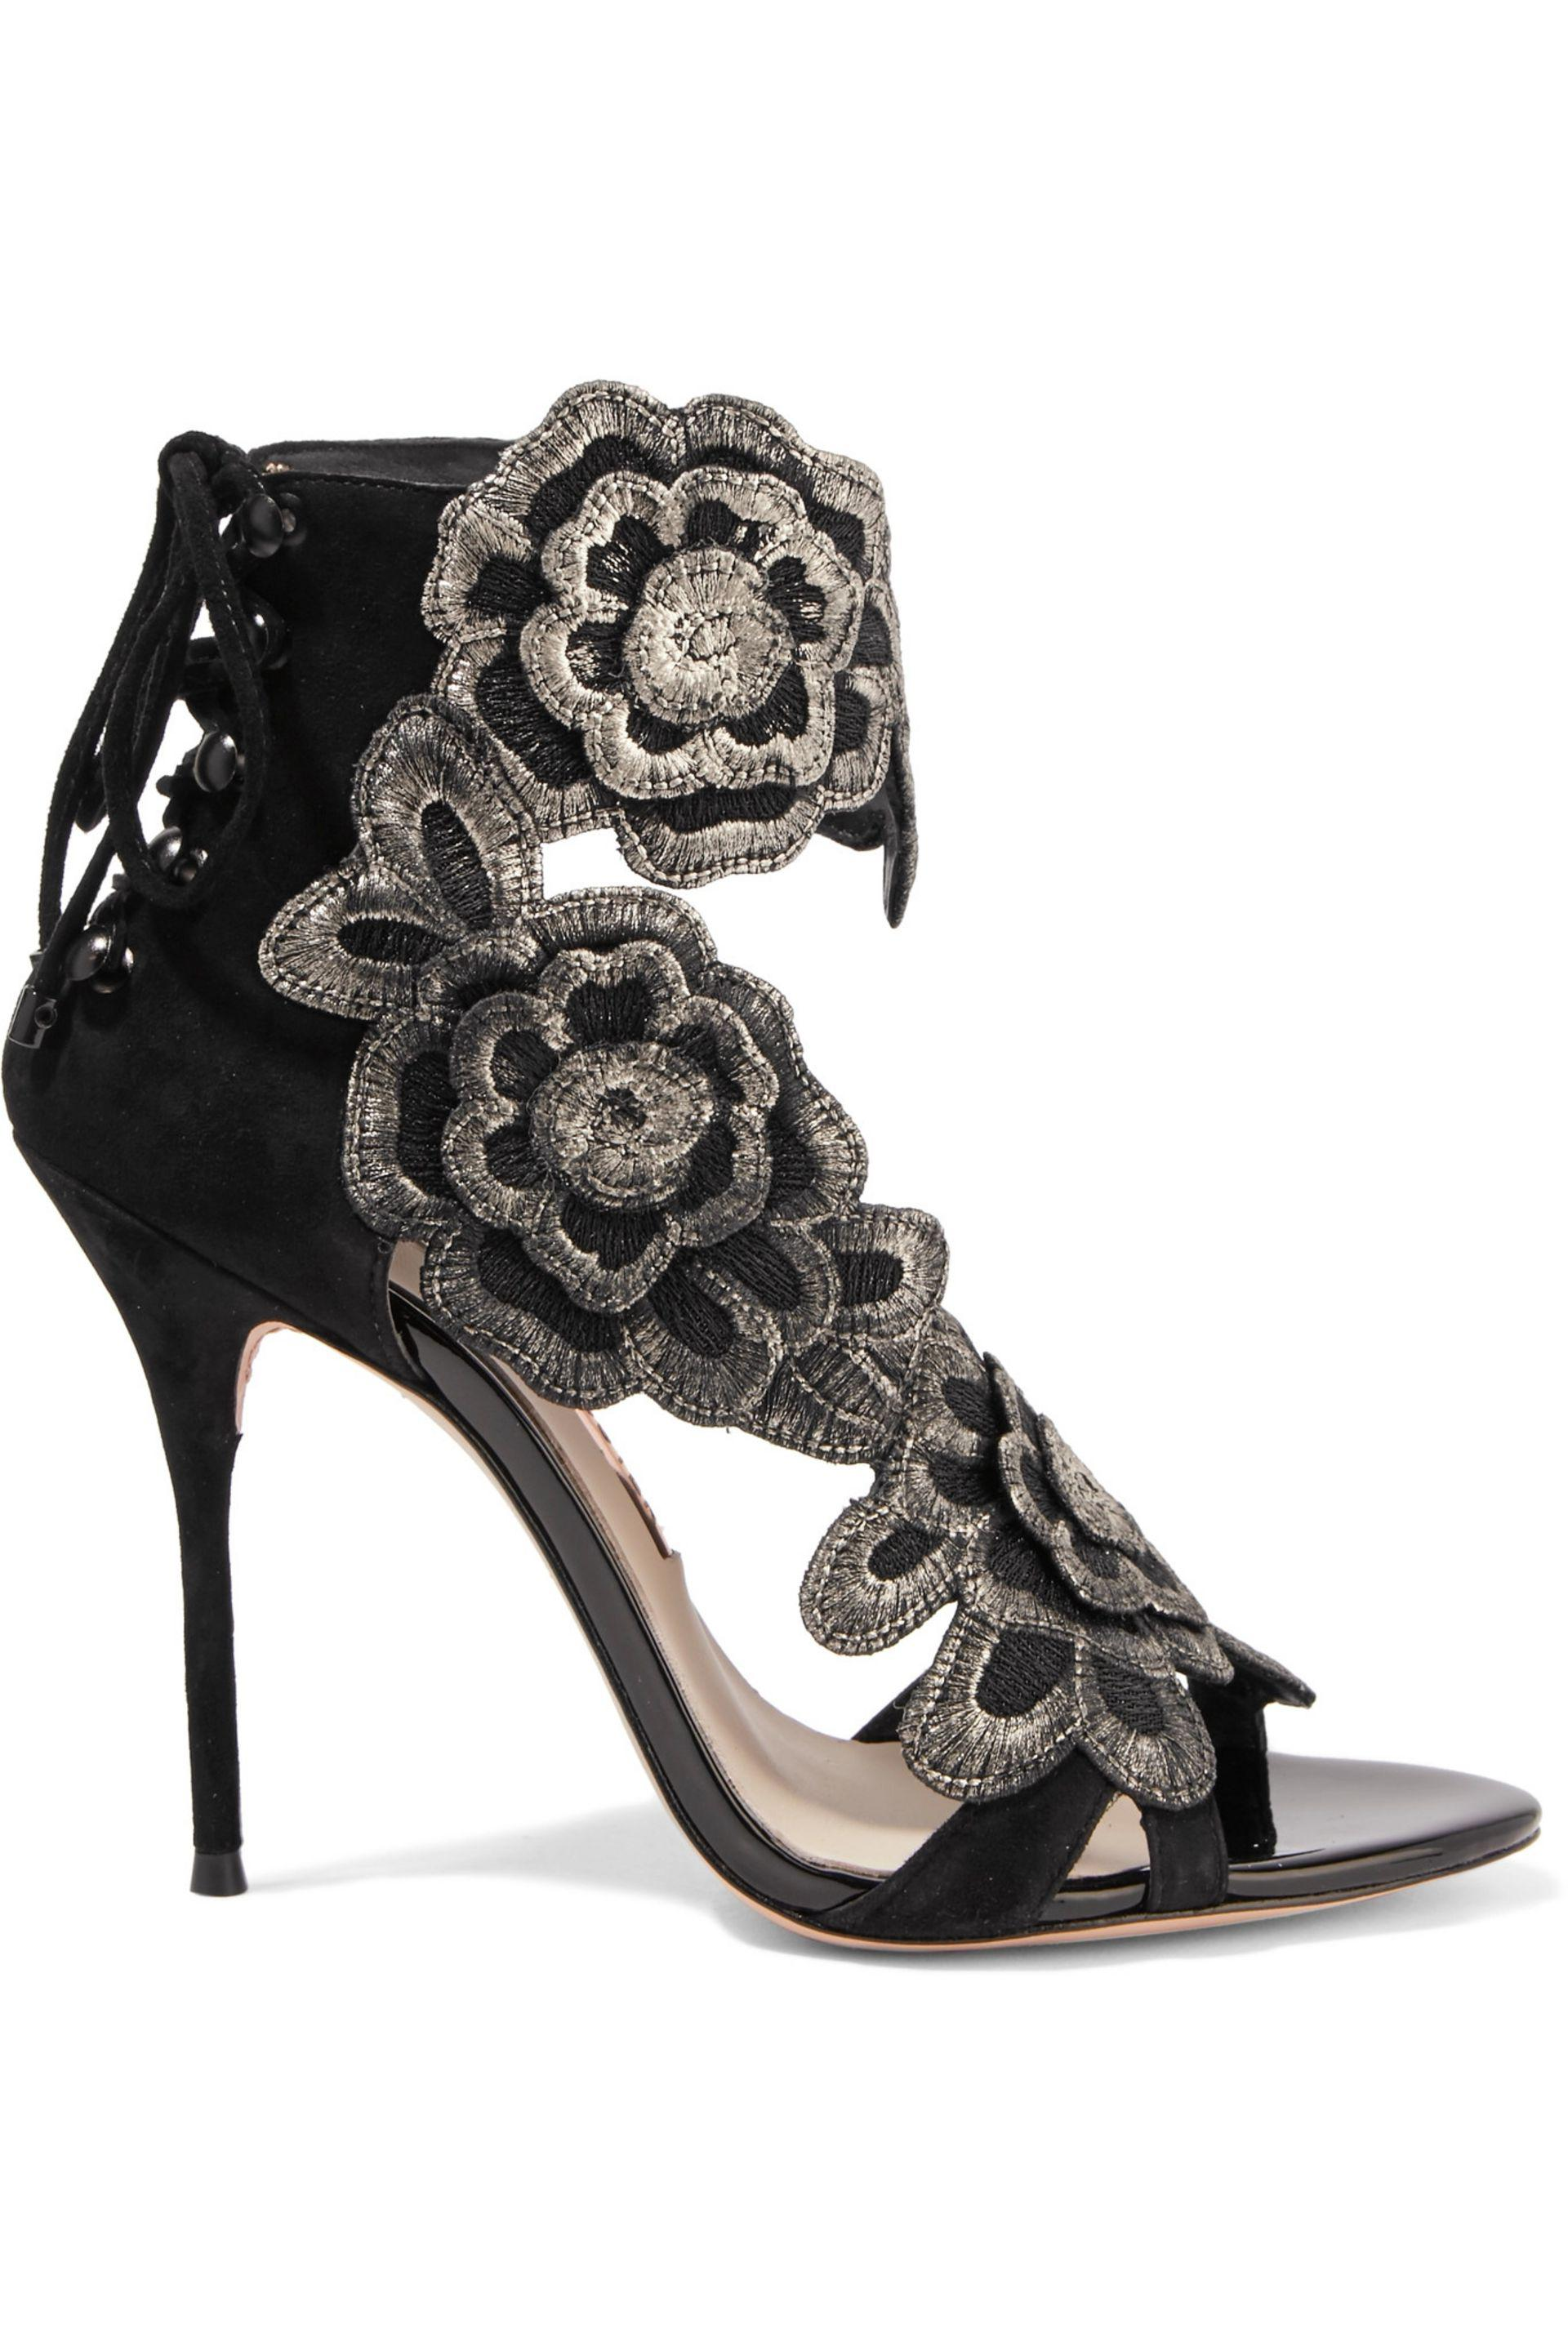 fef023190aa0 Lyst - Sophia Webster Winona Embroidered Suede Sandals in Black